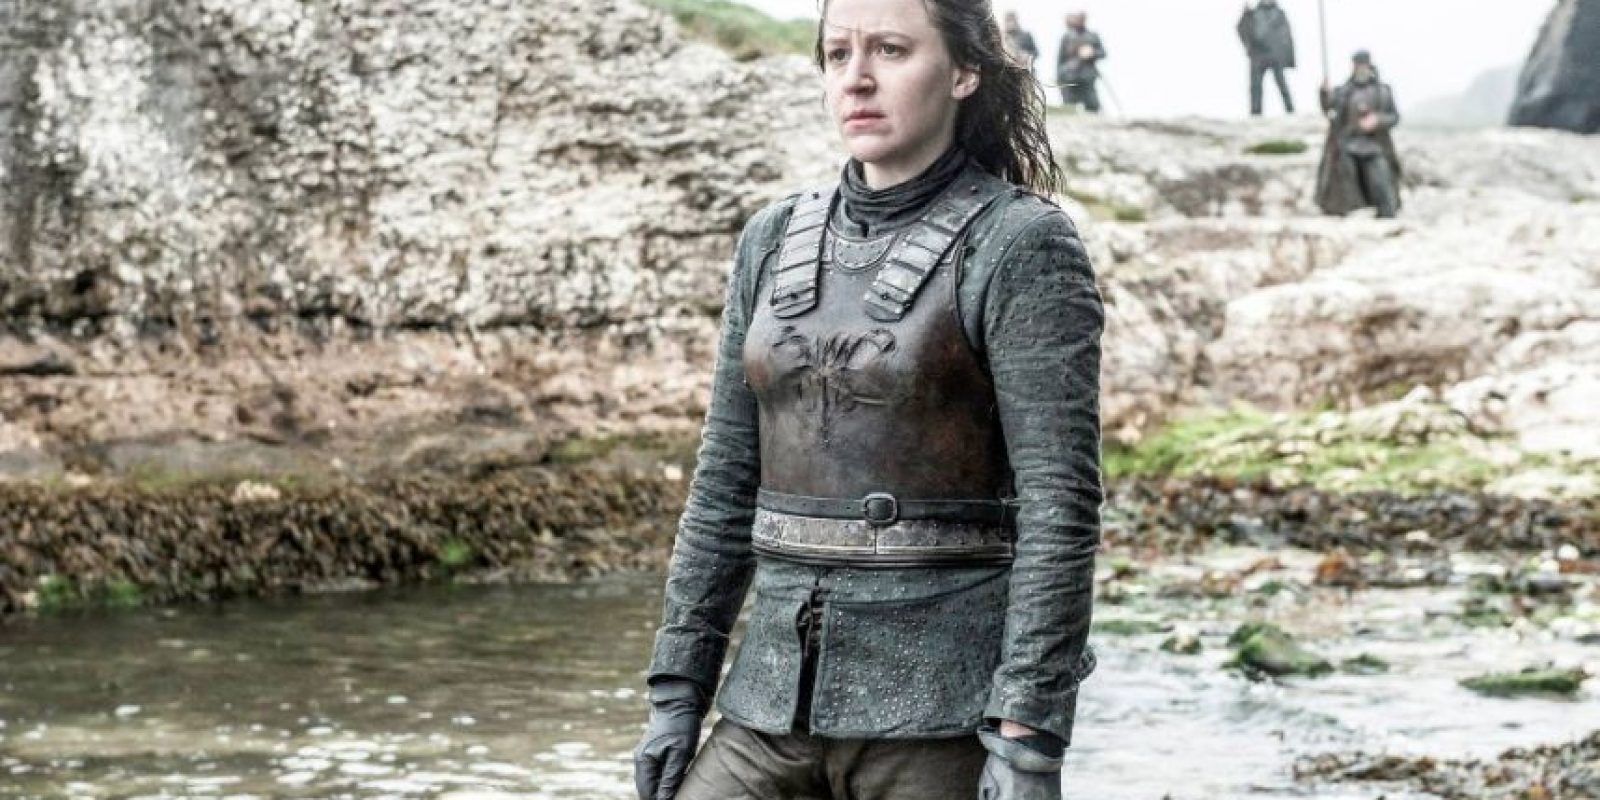 Yara Greyjoy sigue buscando a su hermano. Foto: Vía Facebook/Game of Thrones